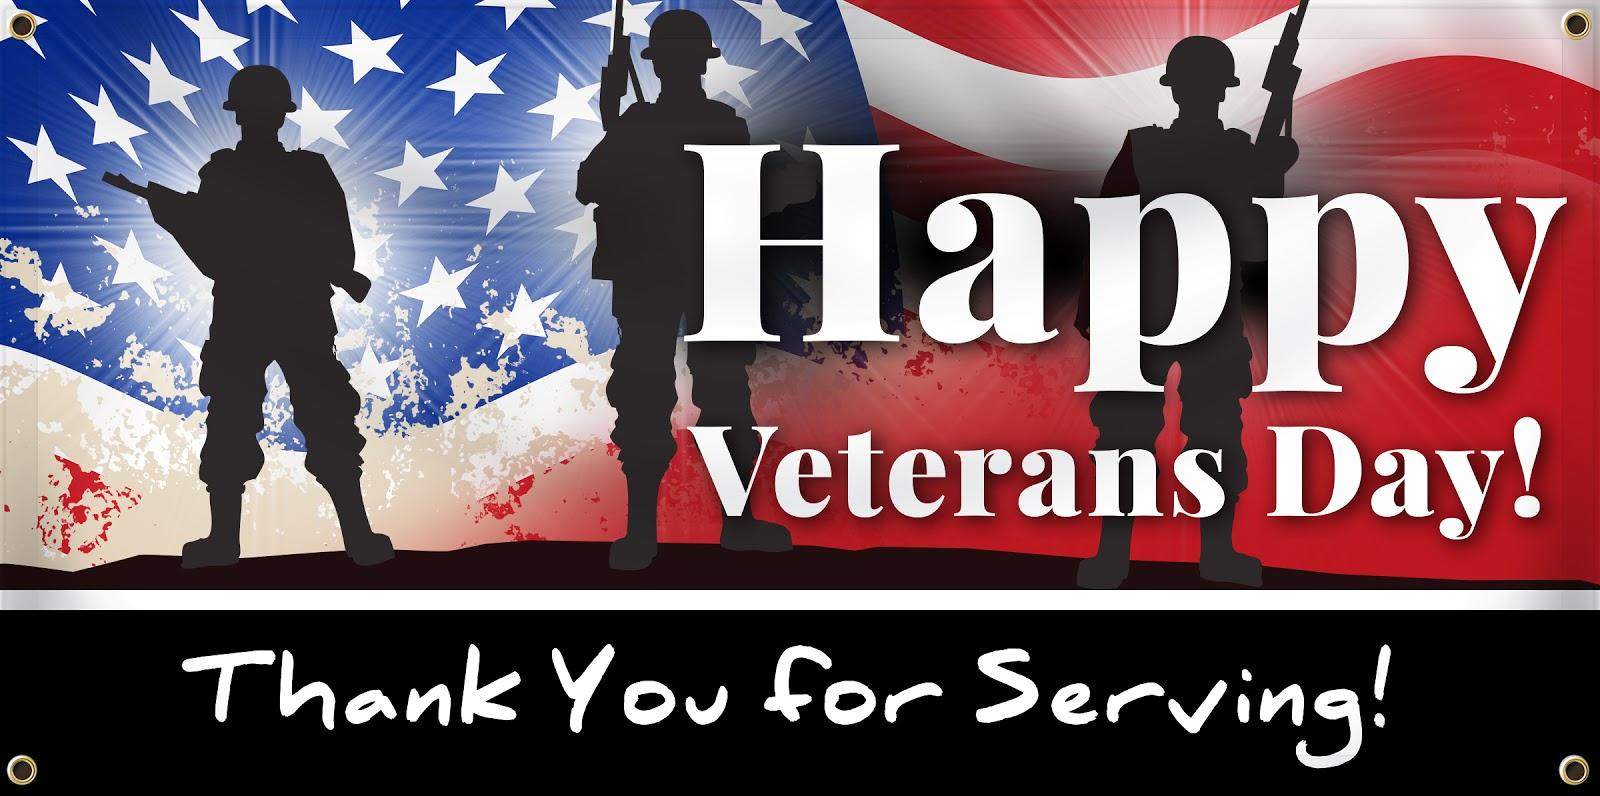 30+ Happy Veterans Day Image 2019 Free for Public Domain